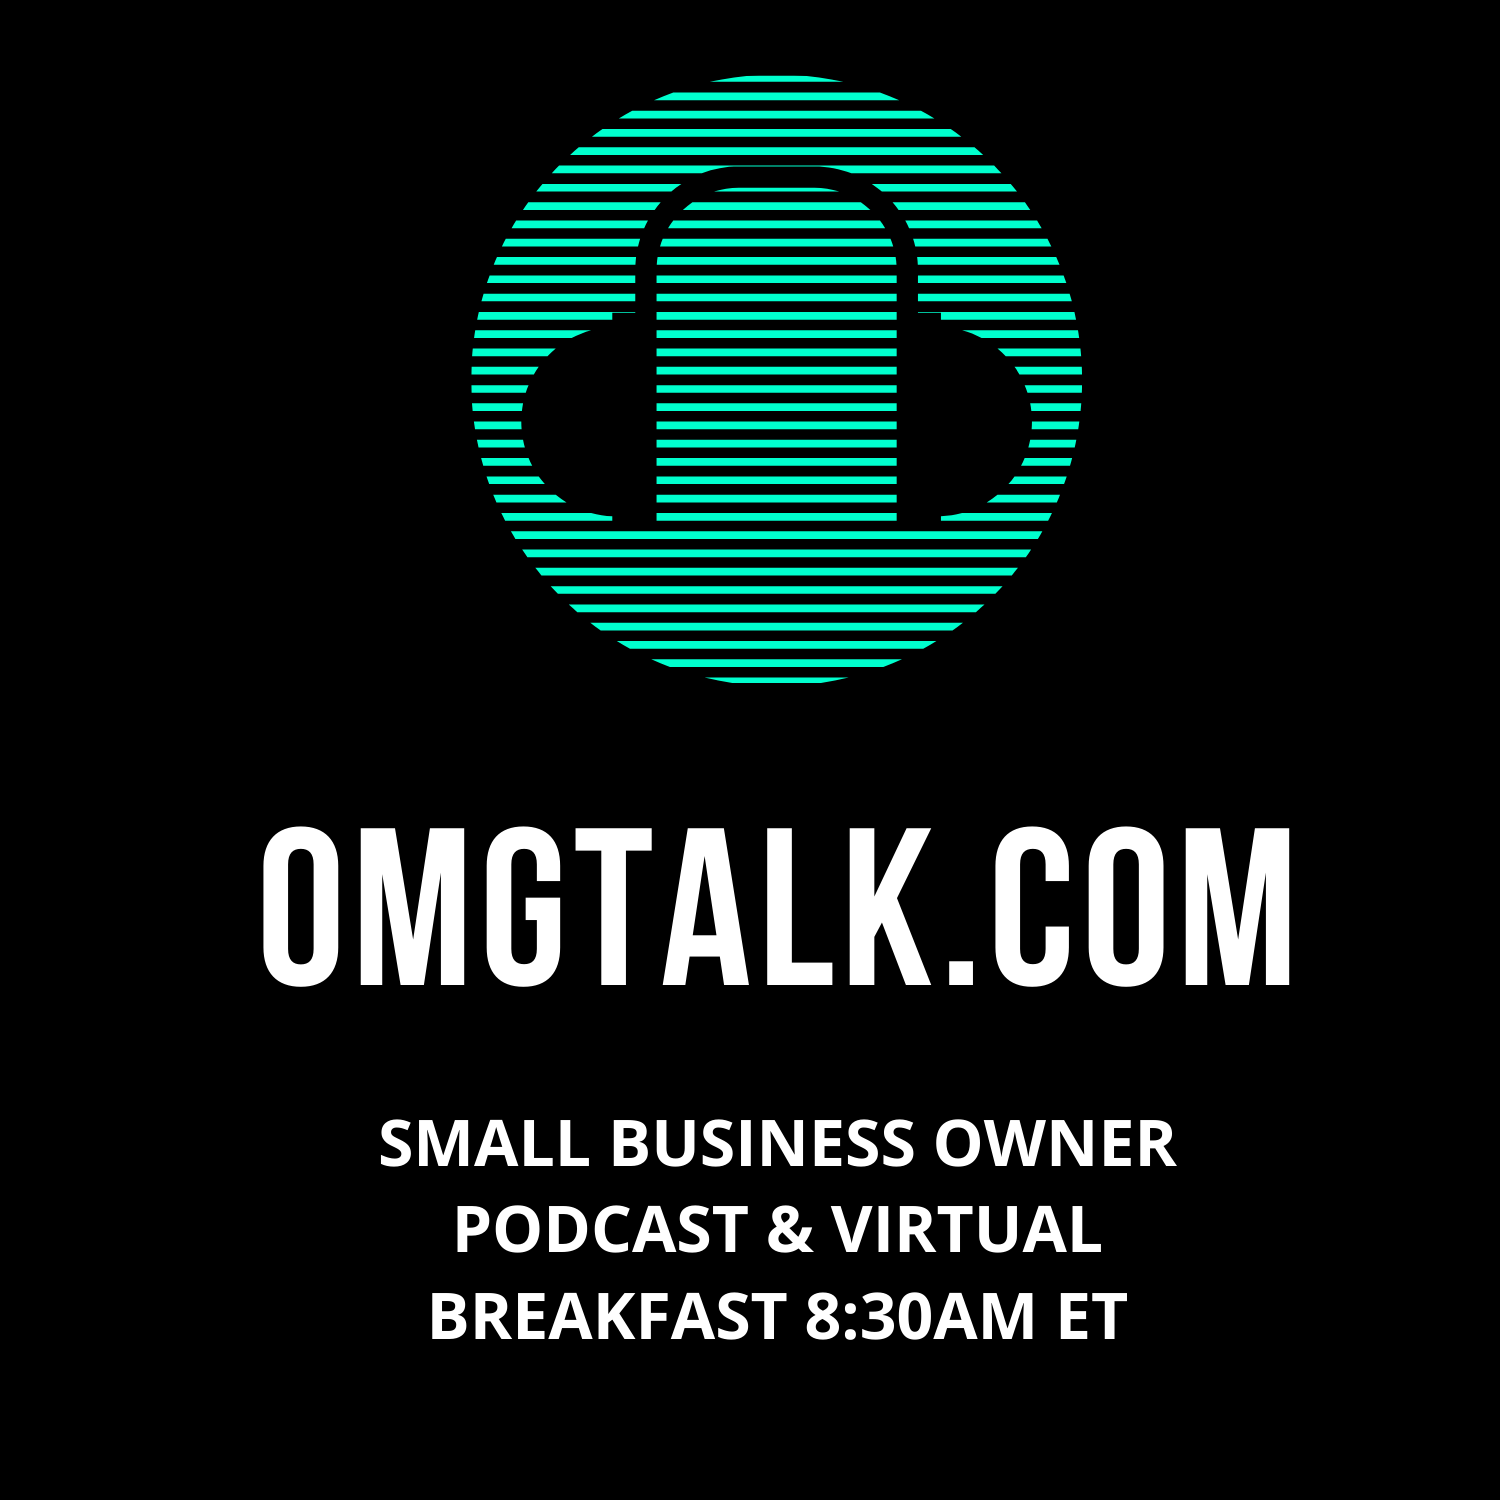 RSVP By Wed To Speak 5-10 Min At Omgtalk.com